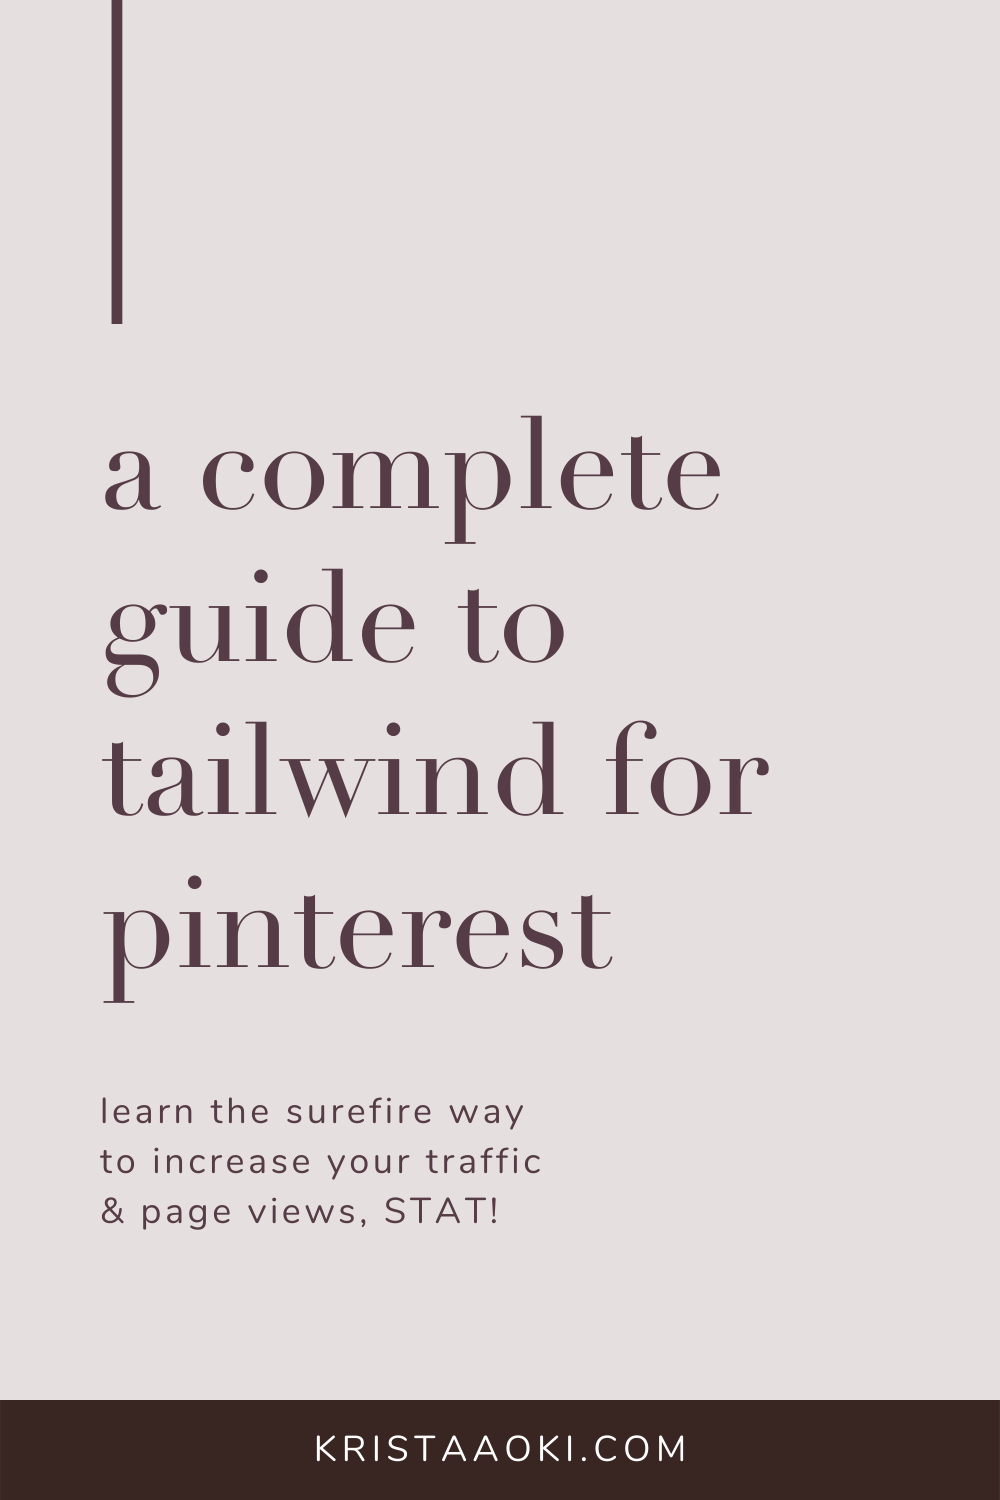 Read these tips on how to use Tailwind for Pinterest marketing for your small business blog. Whether you're looking for a tutorial on how to use Tailwind to grow your blog traffic, or looking for Tribes to join to increase your Pinterest presence... you'll love this guide with a strategy guaranteed to grow your blog traffic.